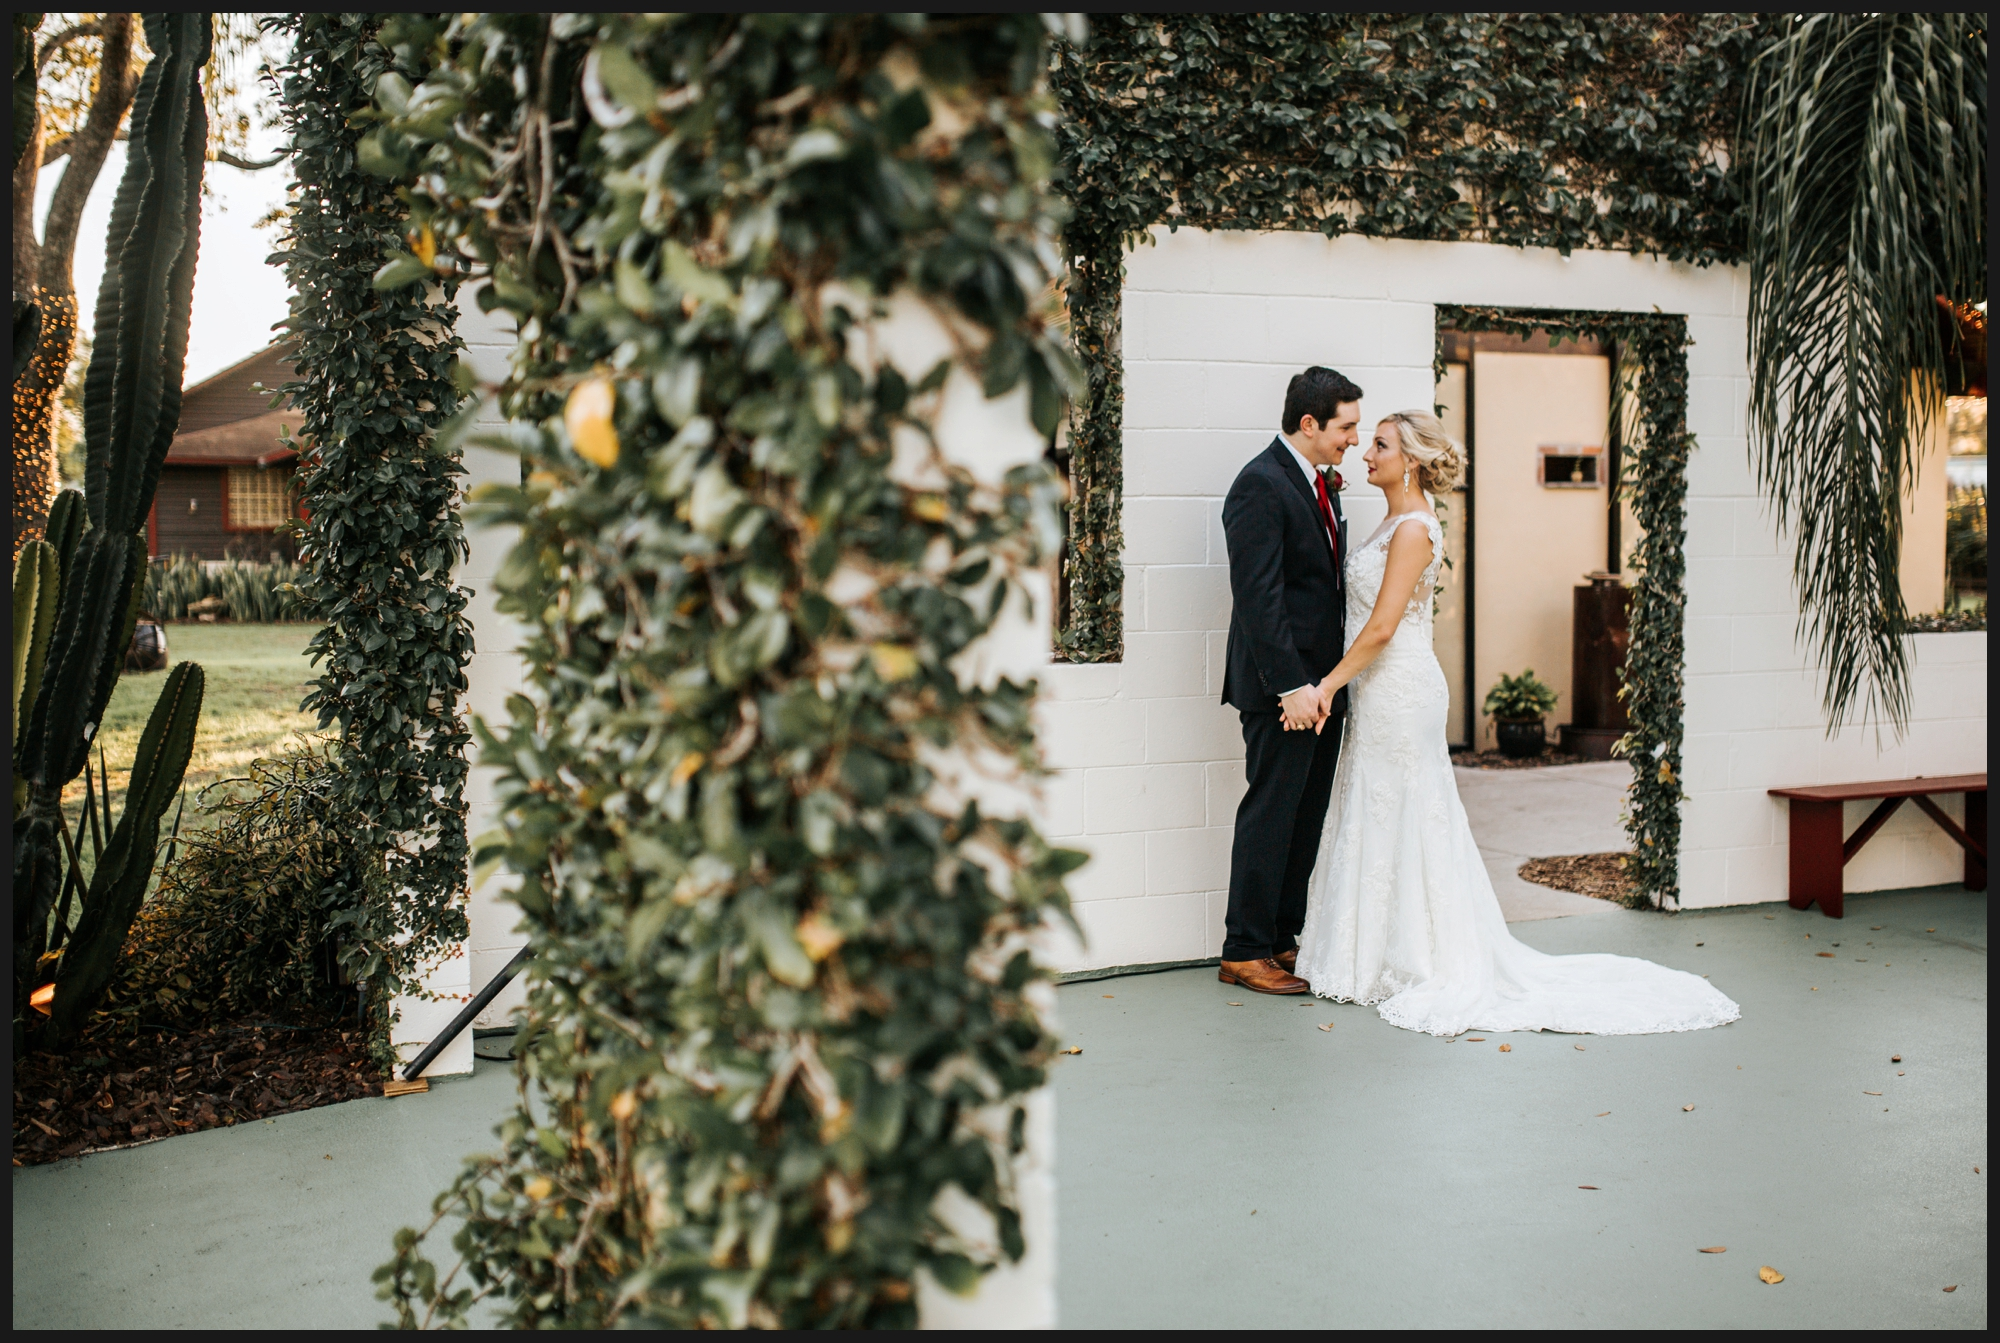 MitchandKatieOrlandoWeddingPhotographer_0104.jpg